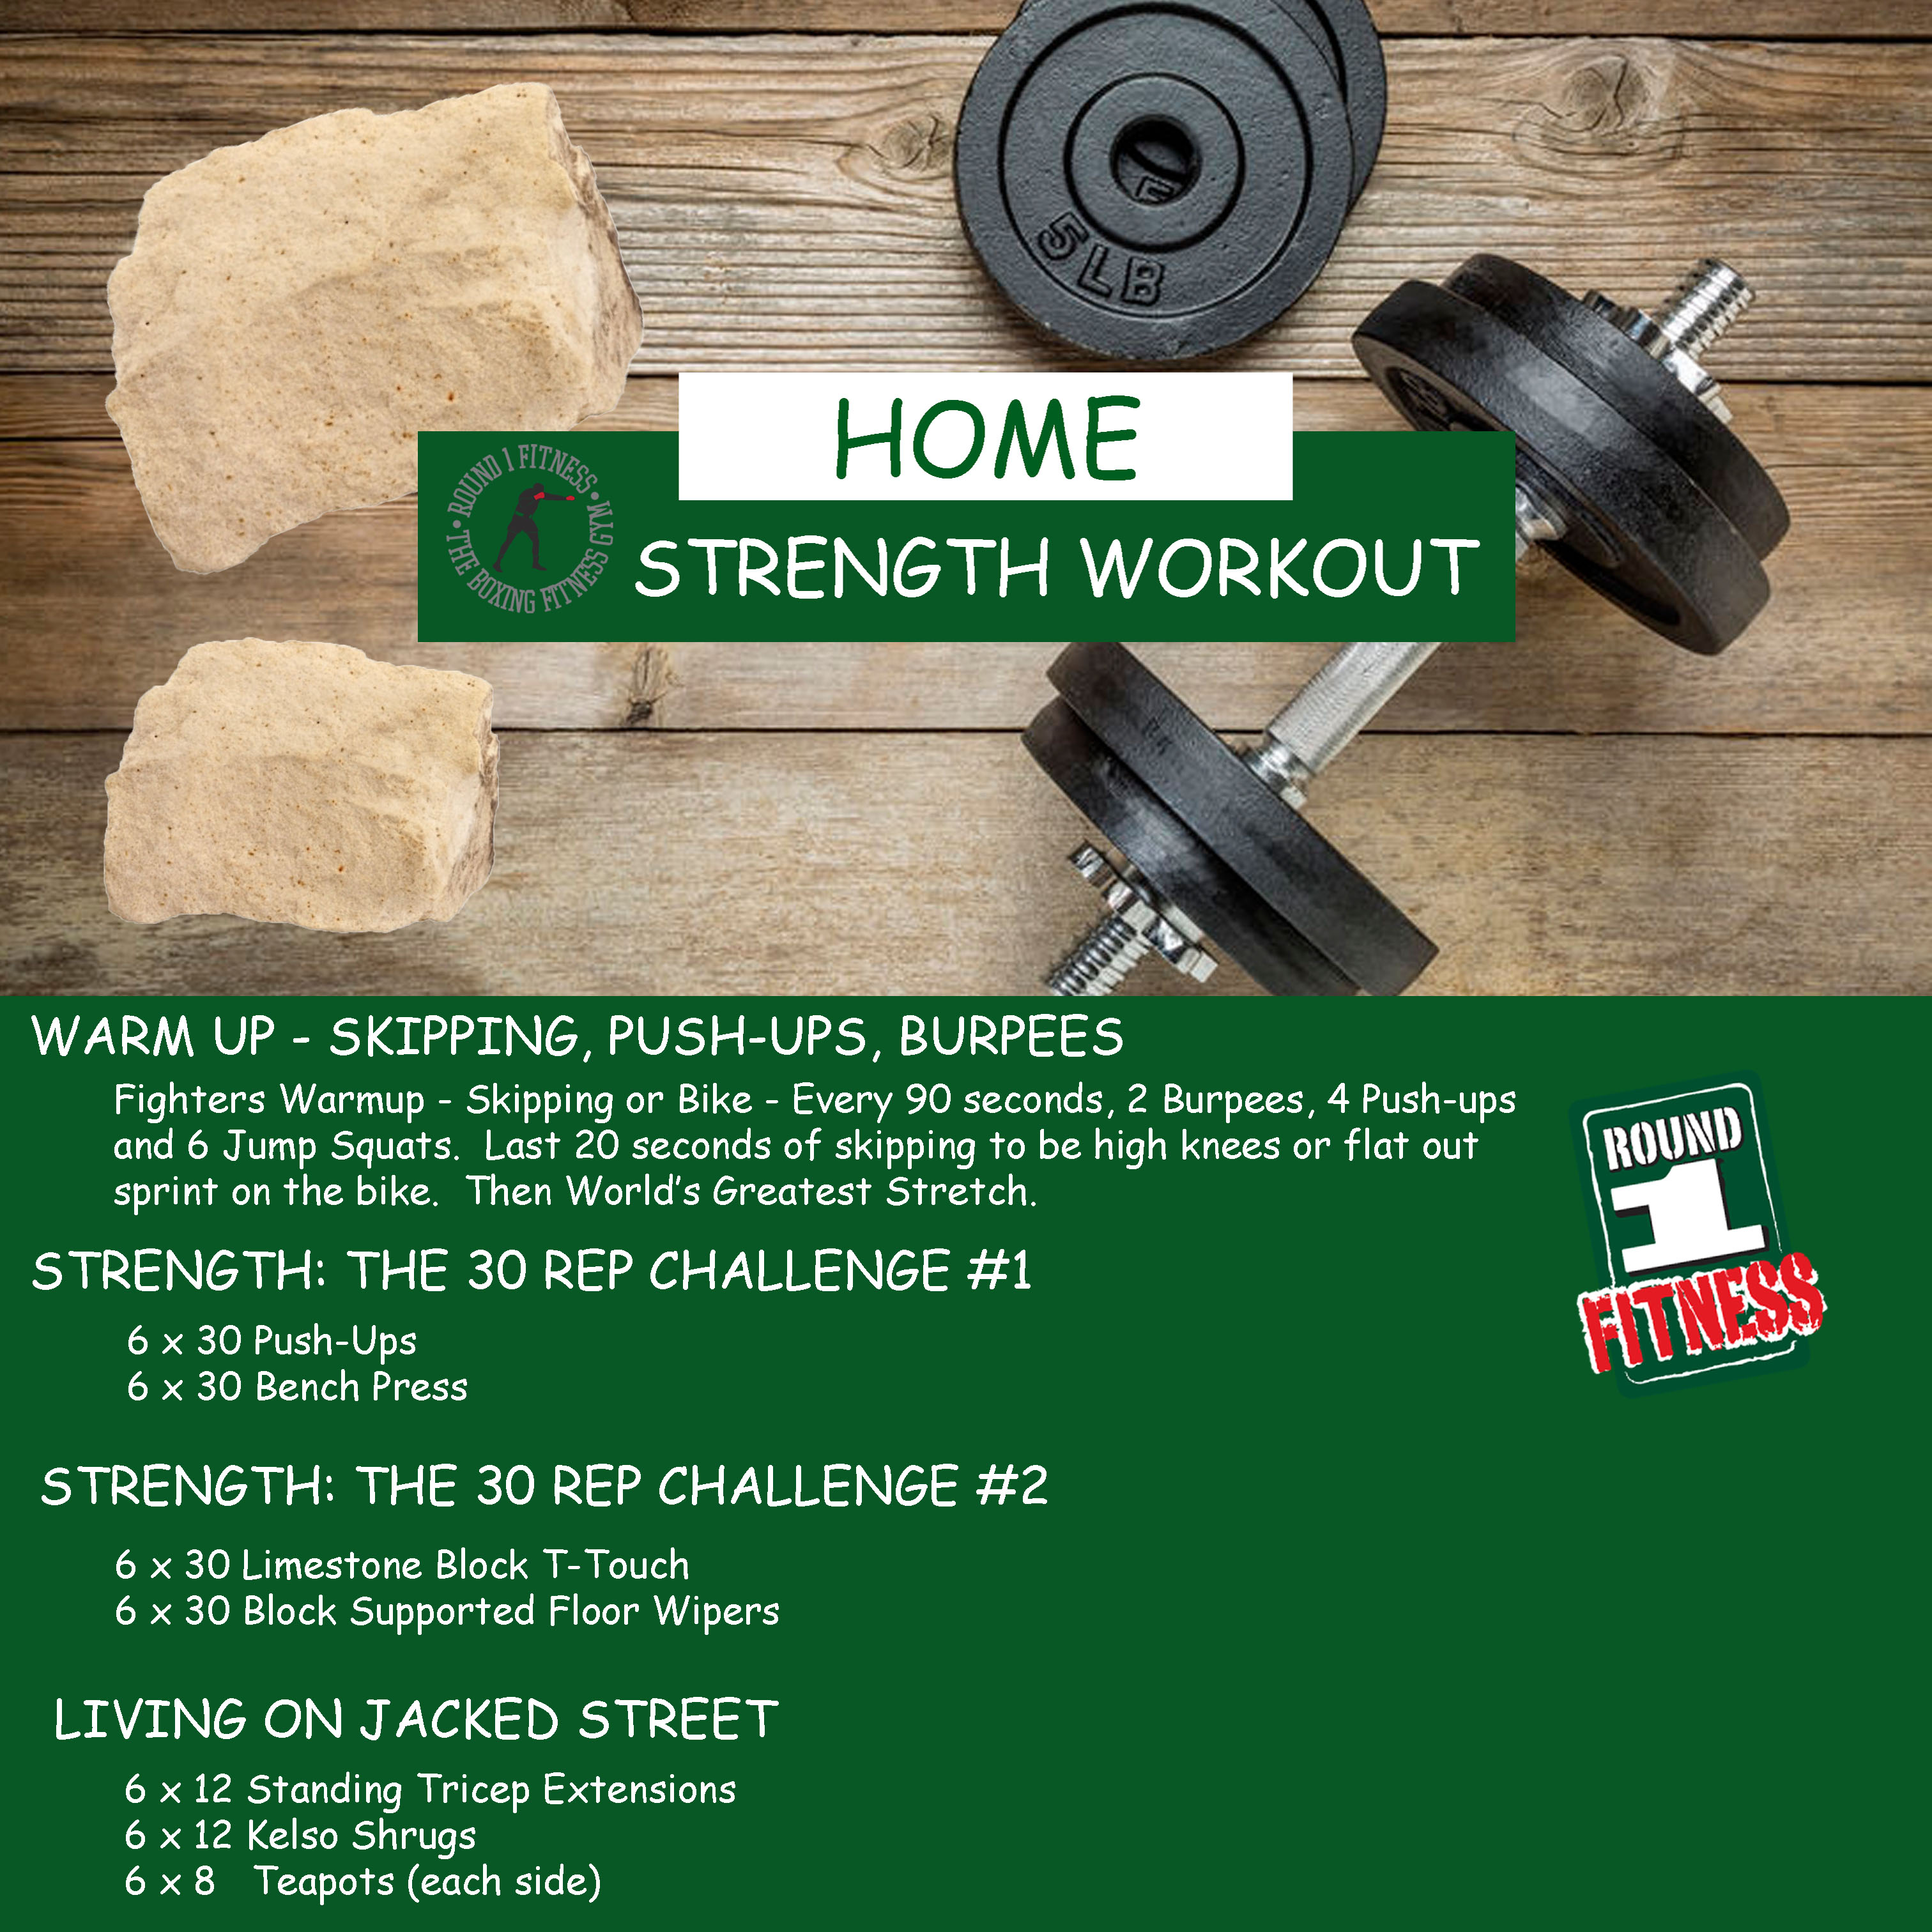 Home Workout:  Wednesday, May 6th